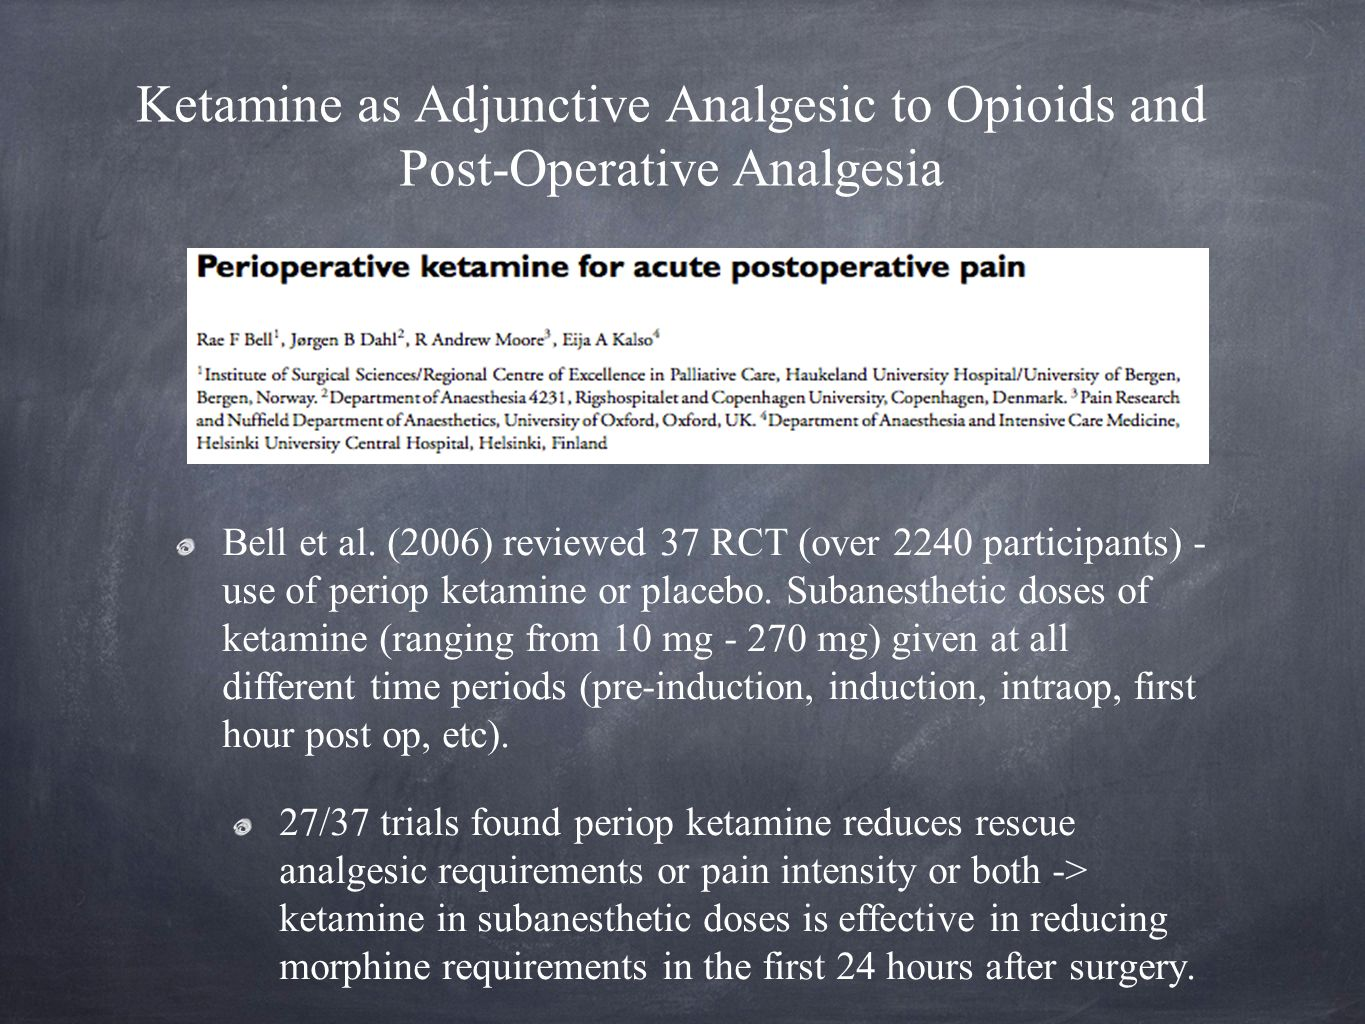 Bell et al. (2006) reviewed 37 RCT (over 2240 participants) - use of periop ketamine or placebo. Subanesthetic doses of ketamine (ranging from 10 mg -